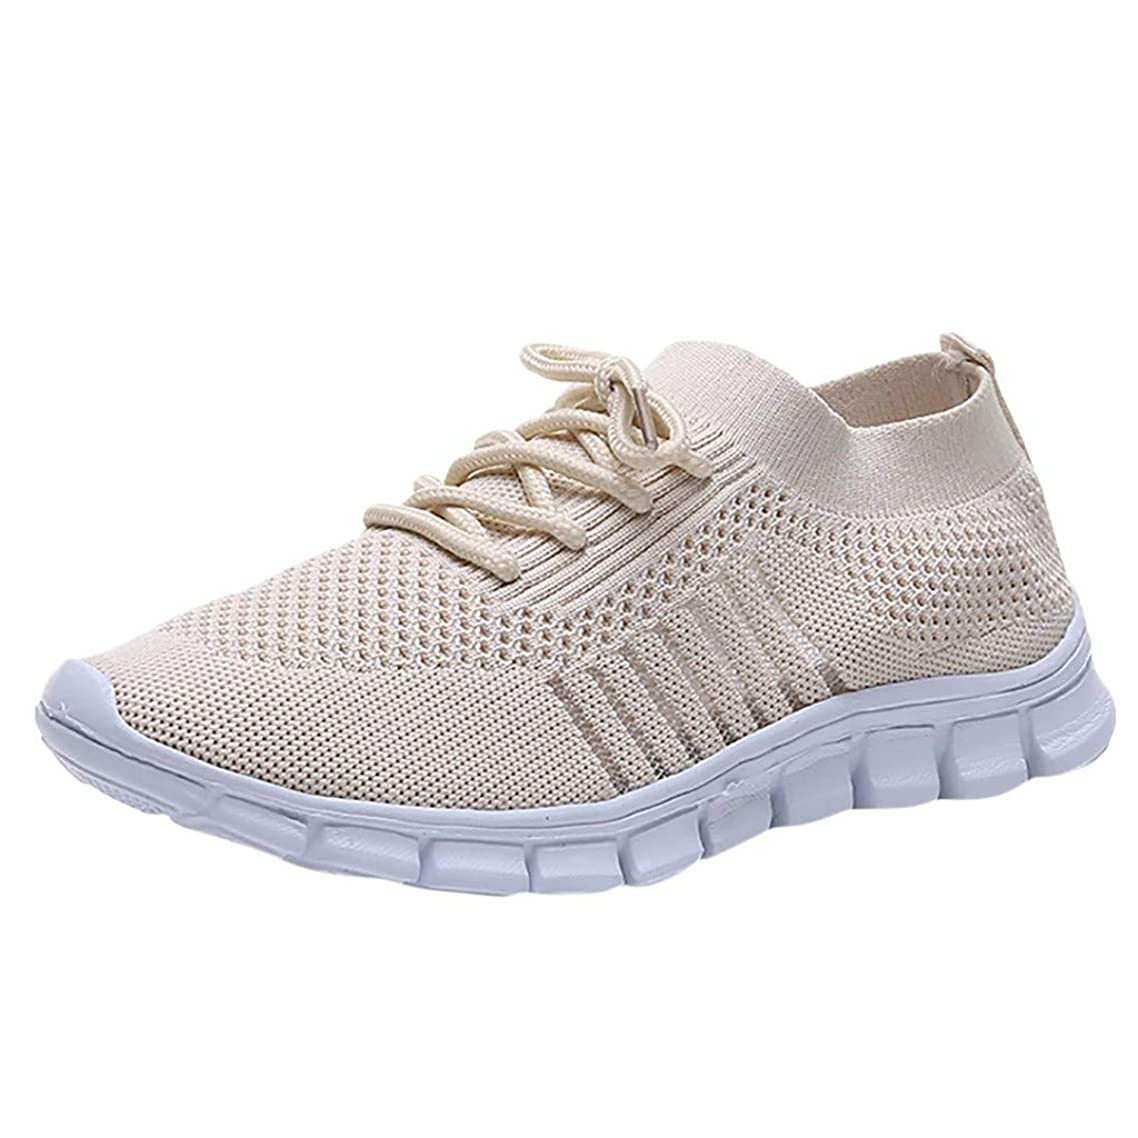 Lovygaga Summer Popular Women Casual Breathable Flying Weaving Sneakers Ladies Brief Solid Color Comfy Socks Shoes